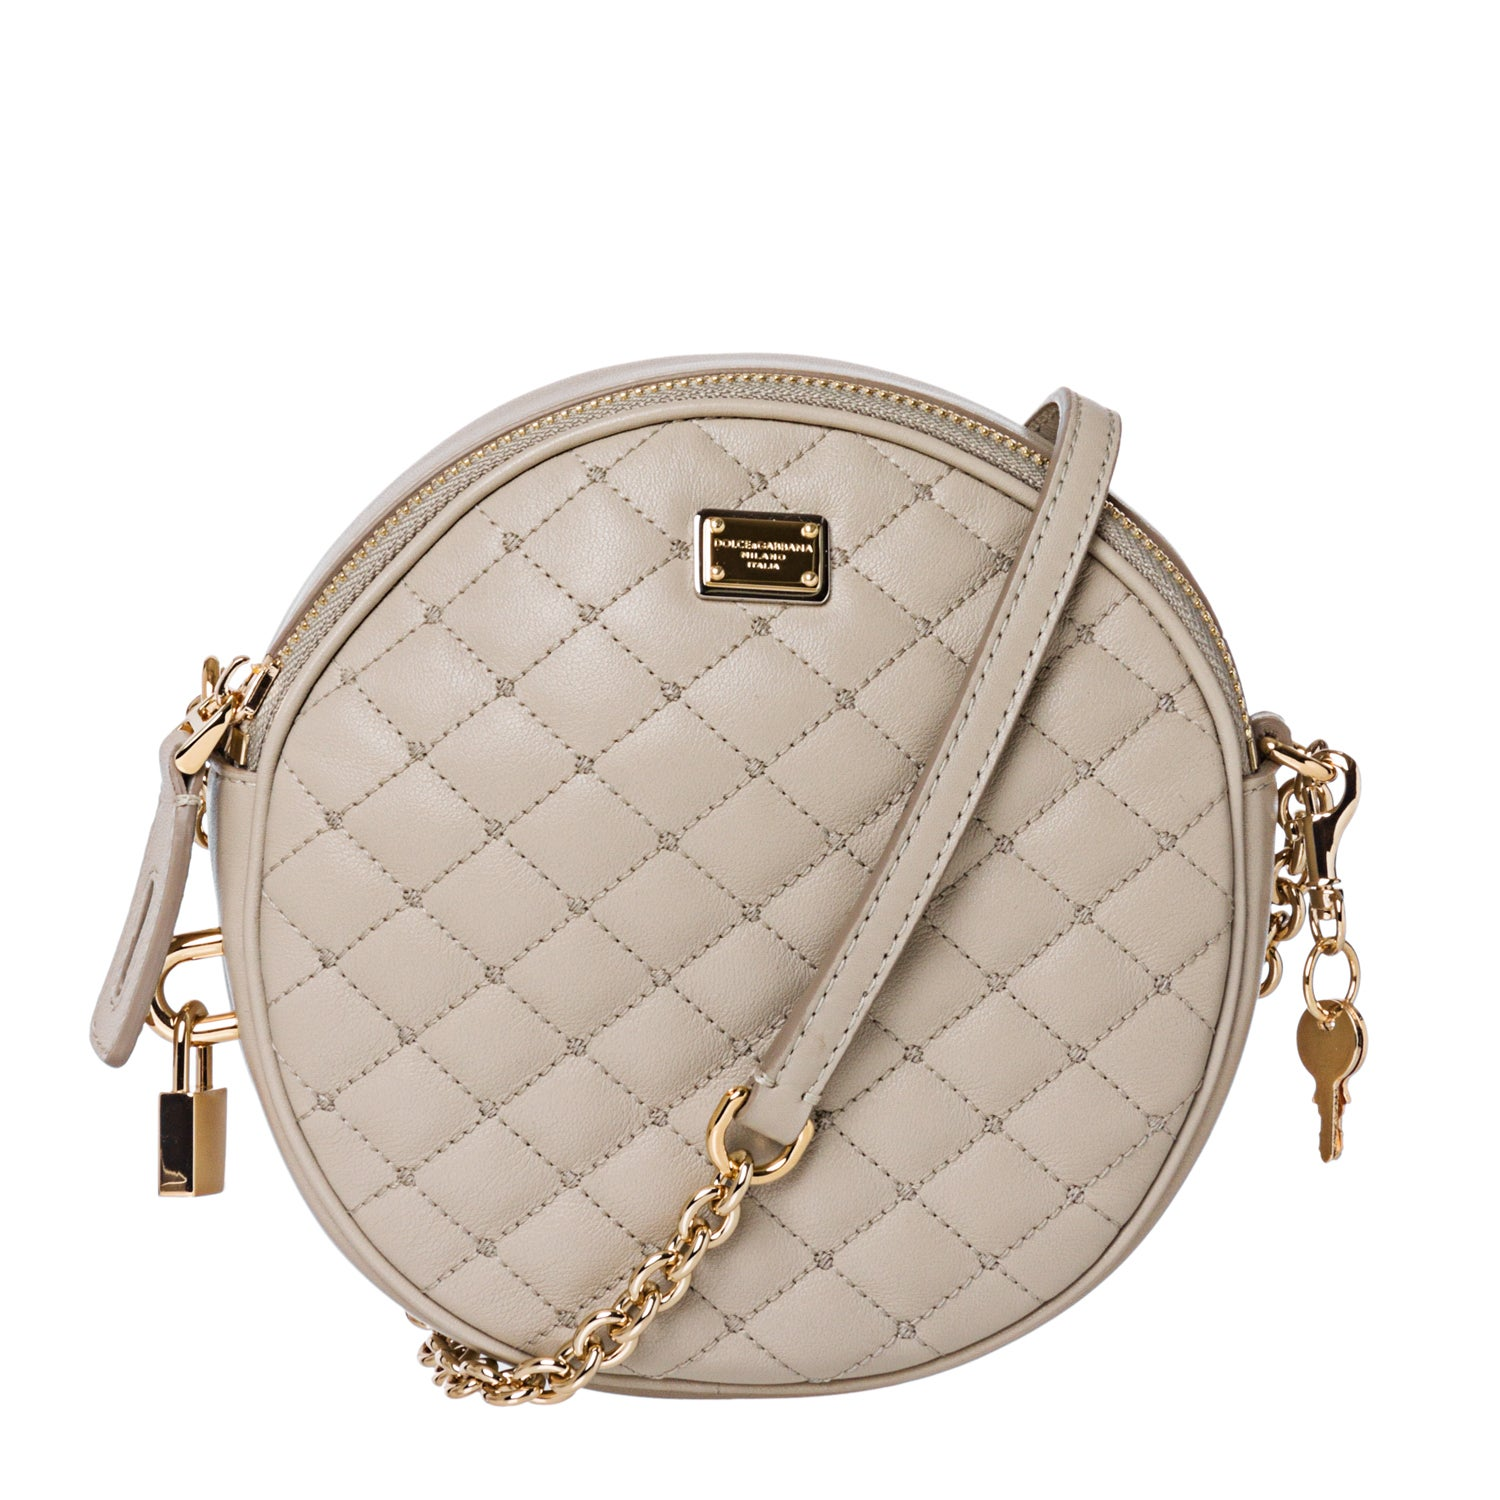 Dolce & Gabbana Taupe Quilted Leather Round Cross-body Bag